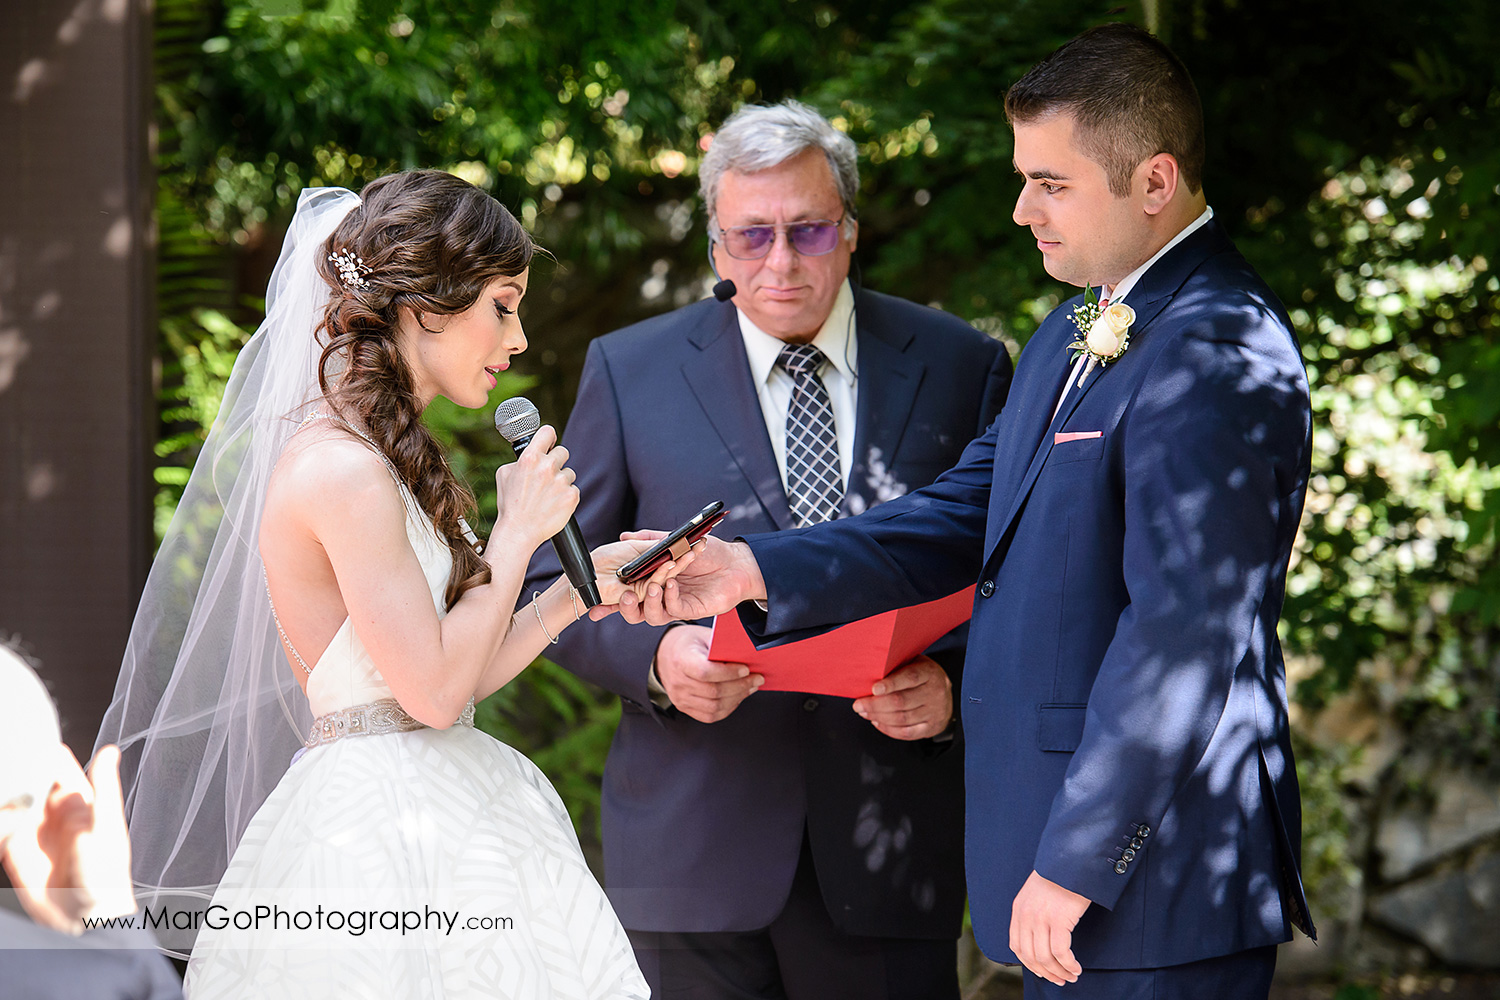 close-up of bride reading vows during wedding ceremony at Saratoga Foothill Club